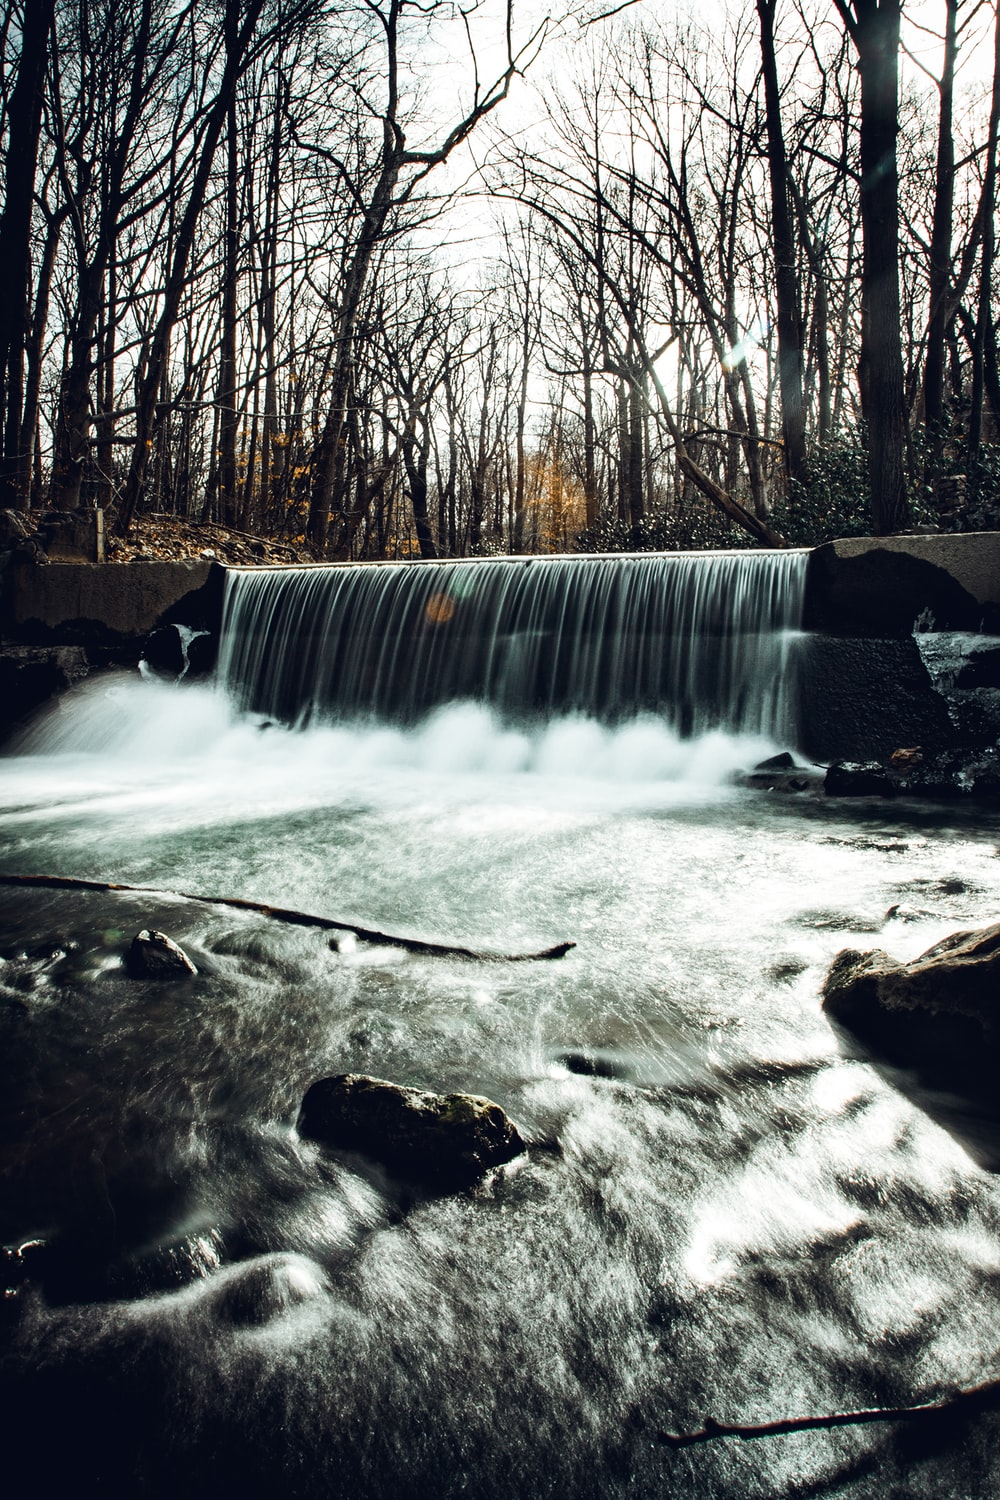 water falls in the middle of bare trees